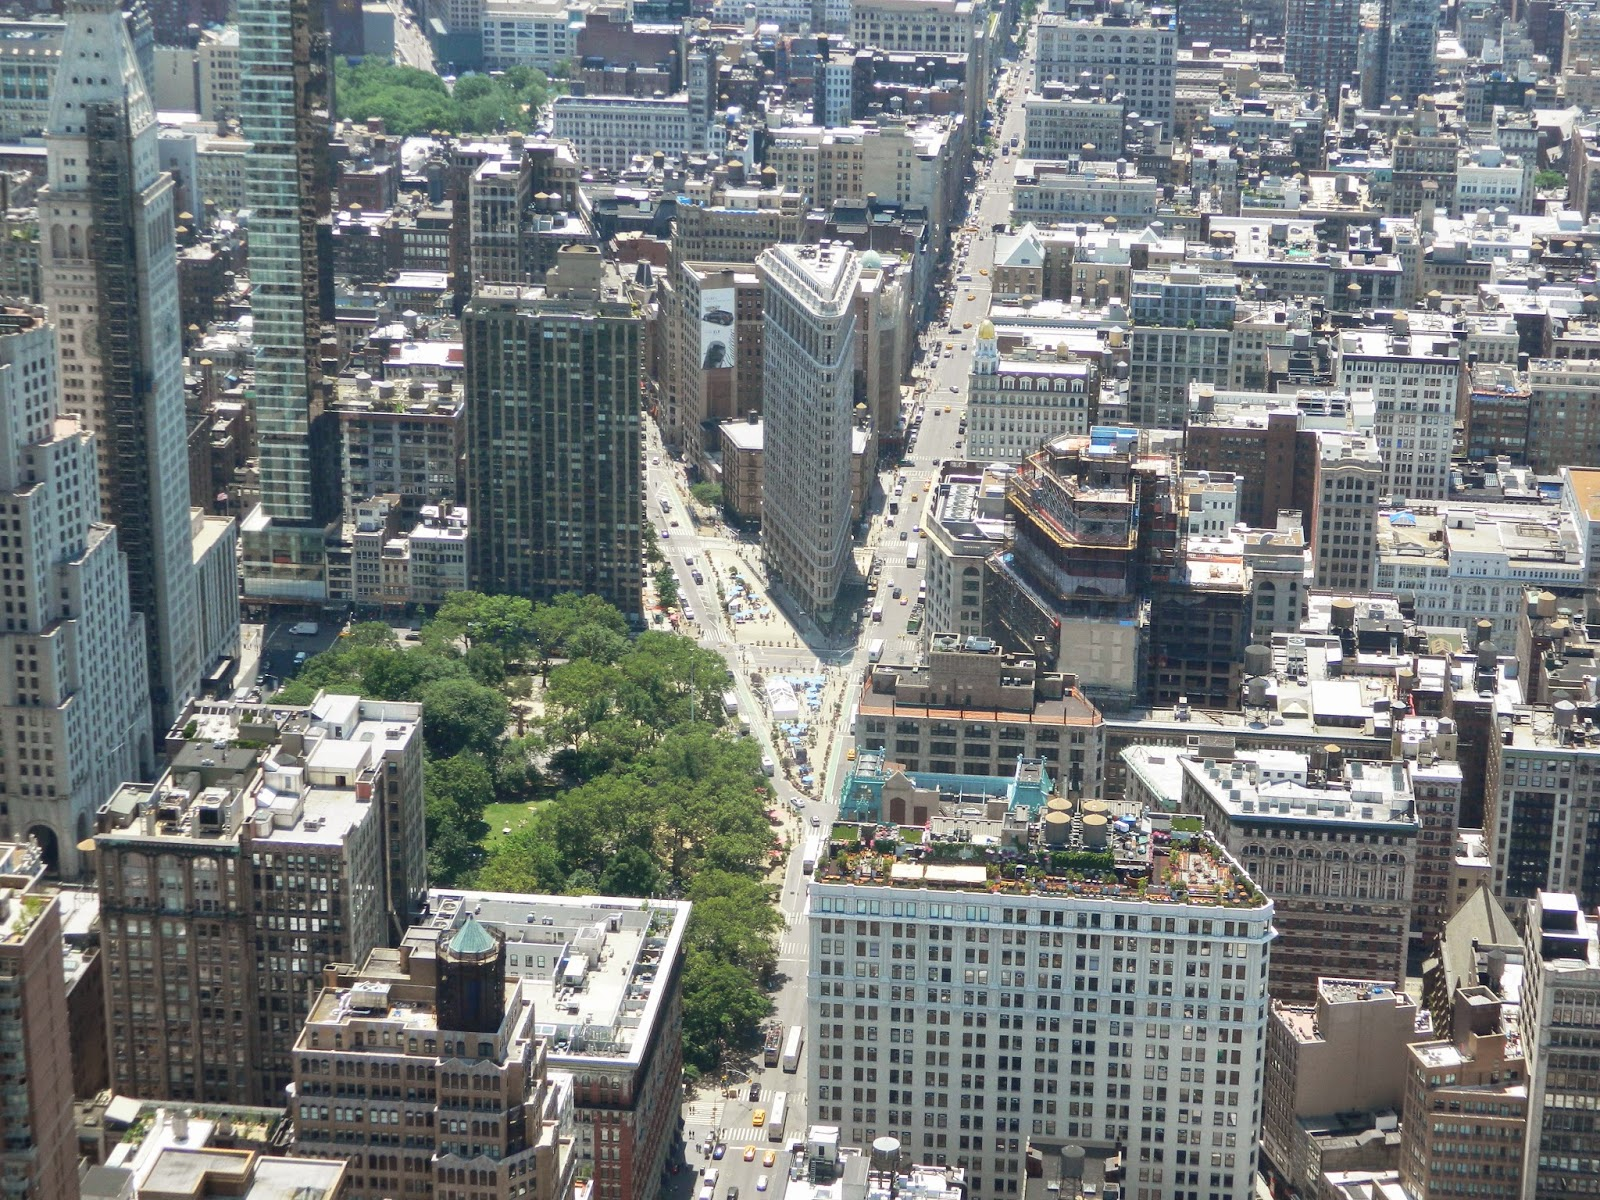 new york city empire state building flatiron building parting of roads skyline